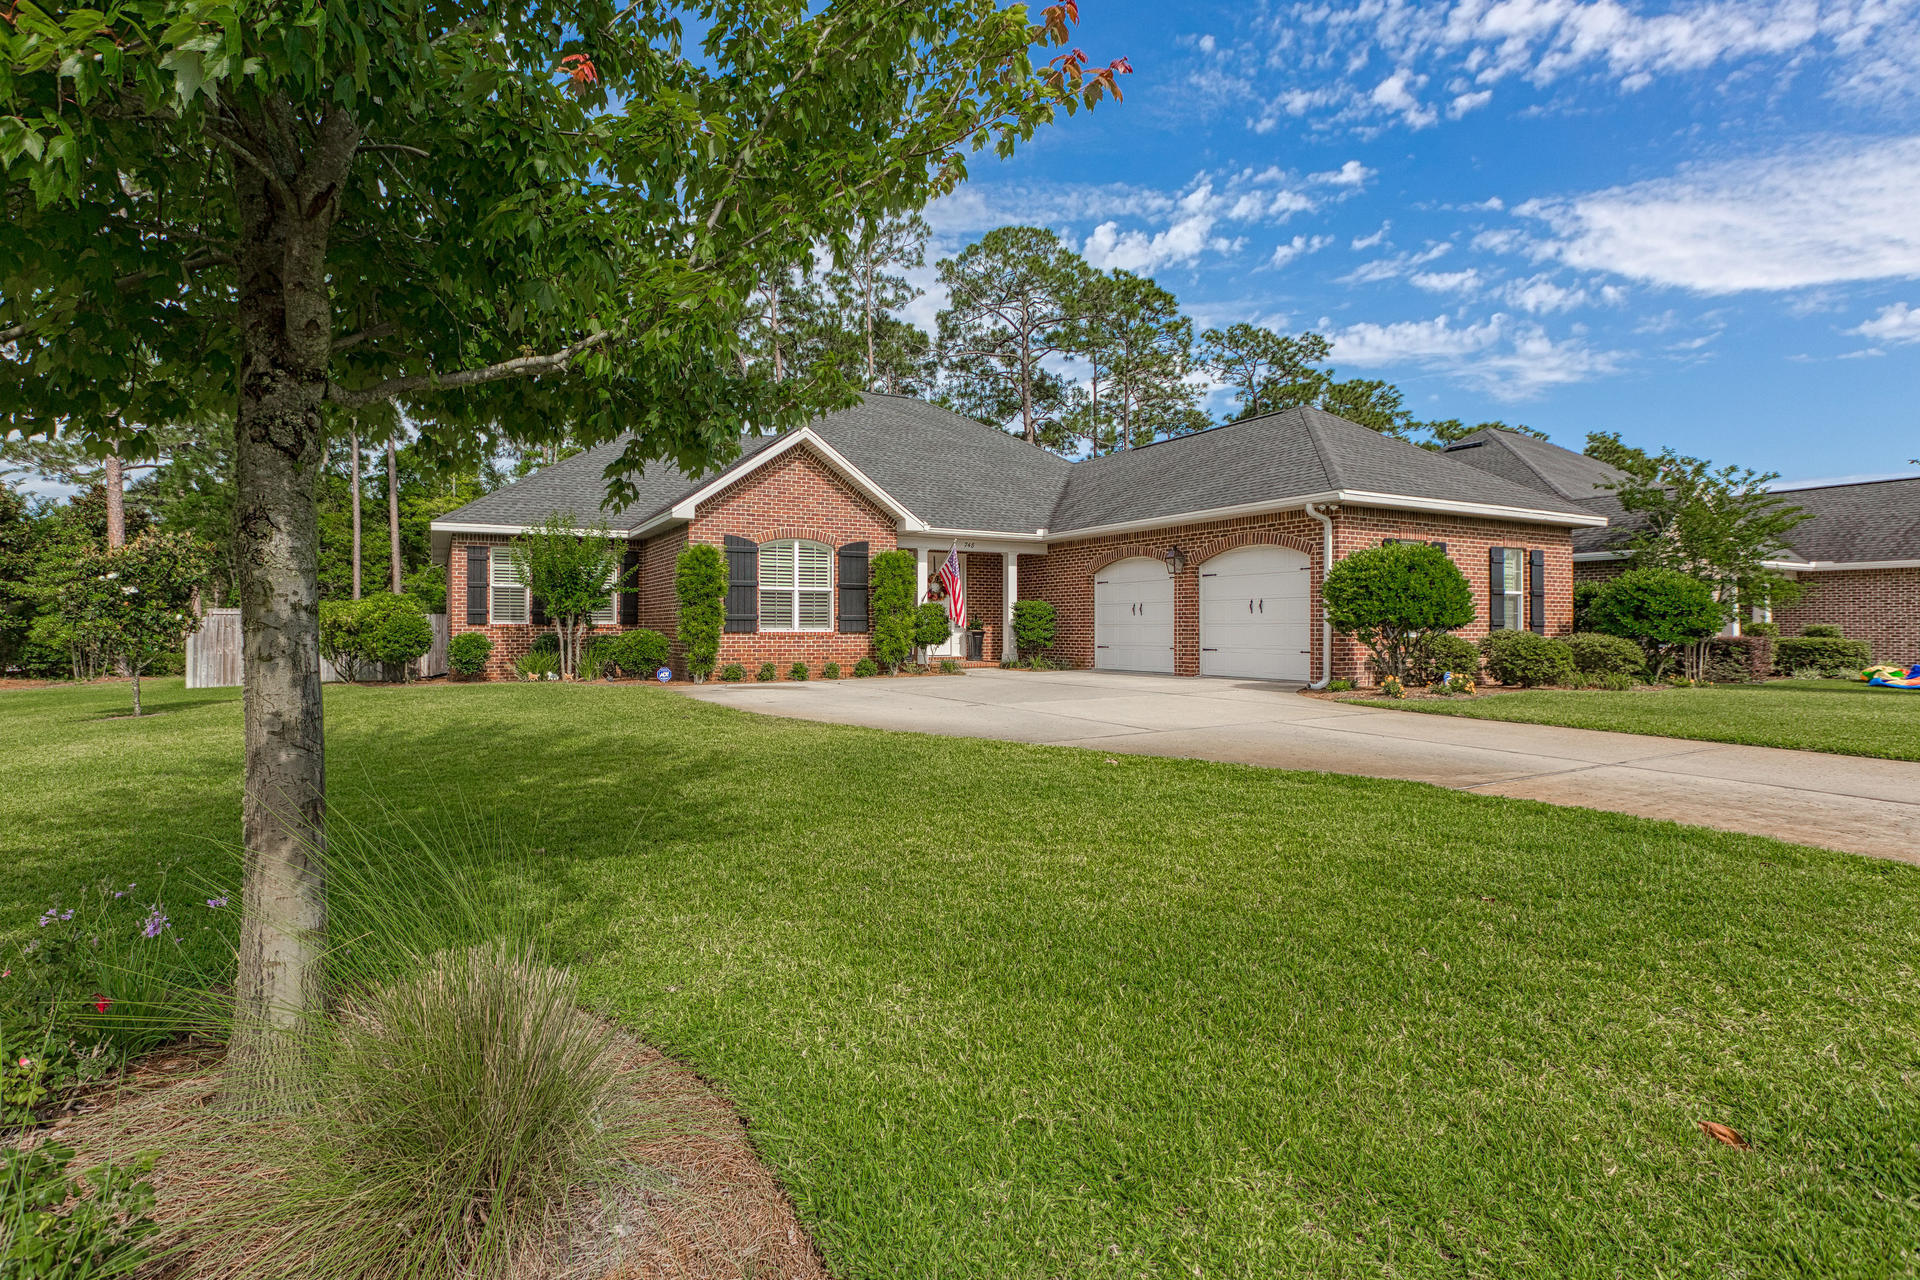 Gorgeous home in desirable Magnolia Woods. This pristine 4 bedroom, 3 bath beauty sits on a large co